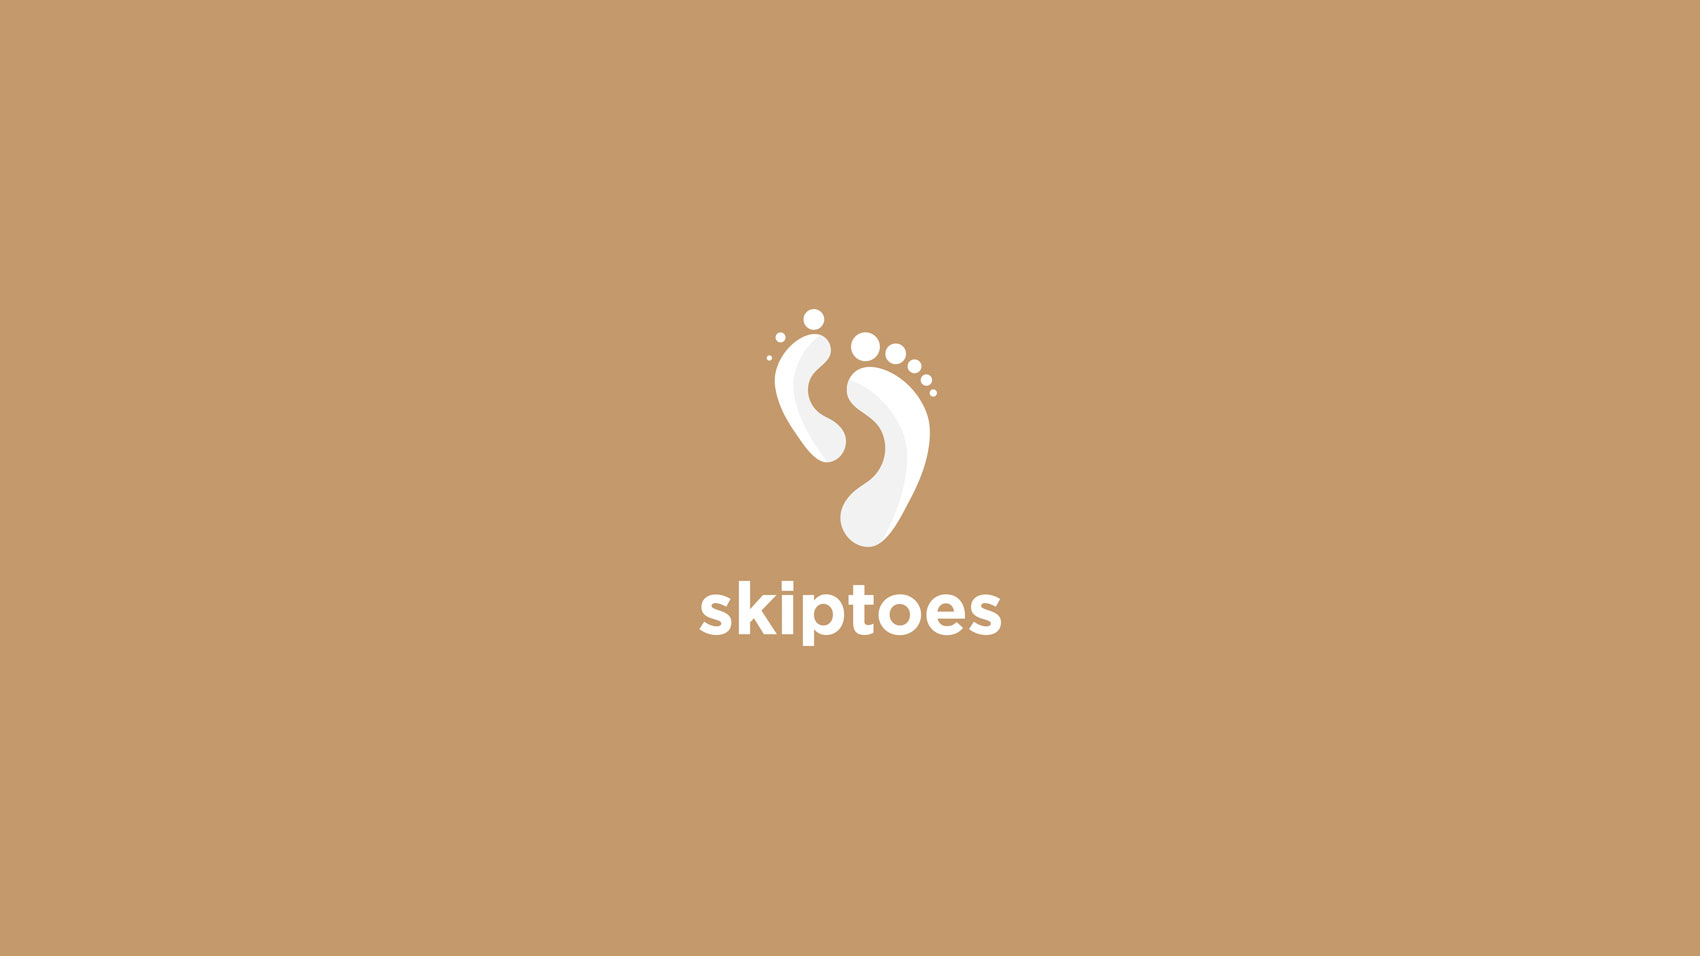 skiptoes logo design